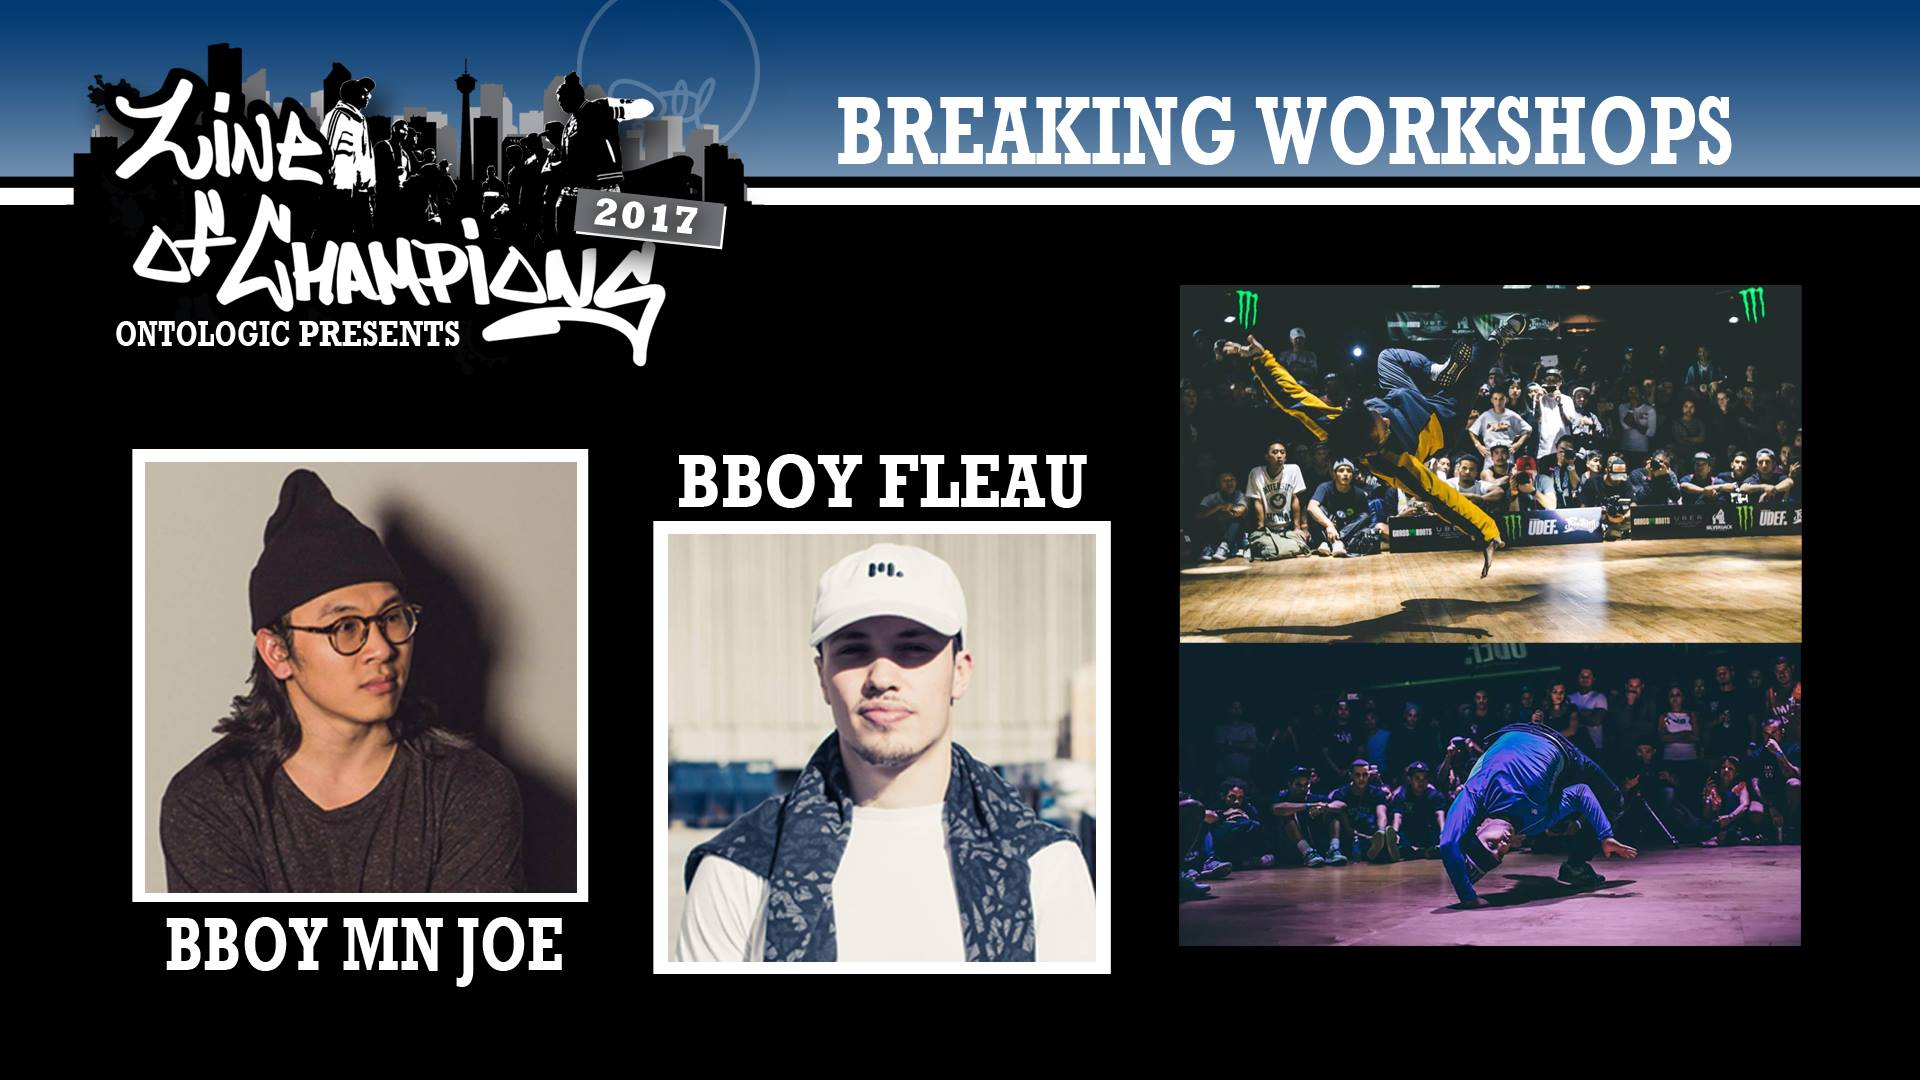 line-of-champions-breaking-workshop-bboy-mn-joe-bboy-fleau-ontologic-pulse-studios-hip-hop-community